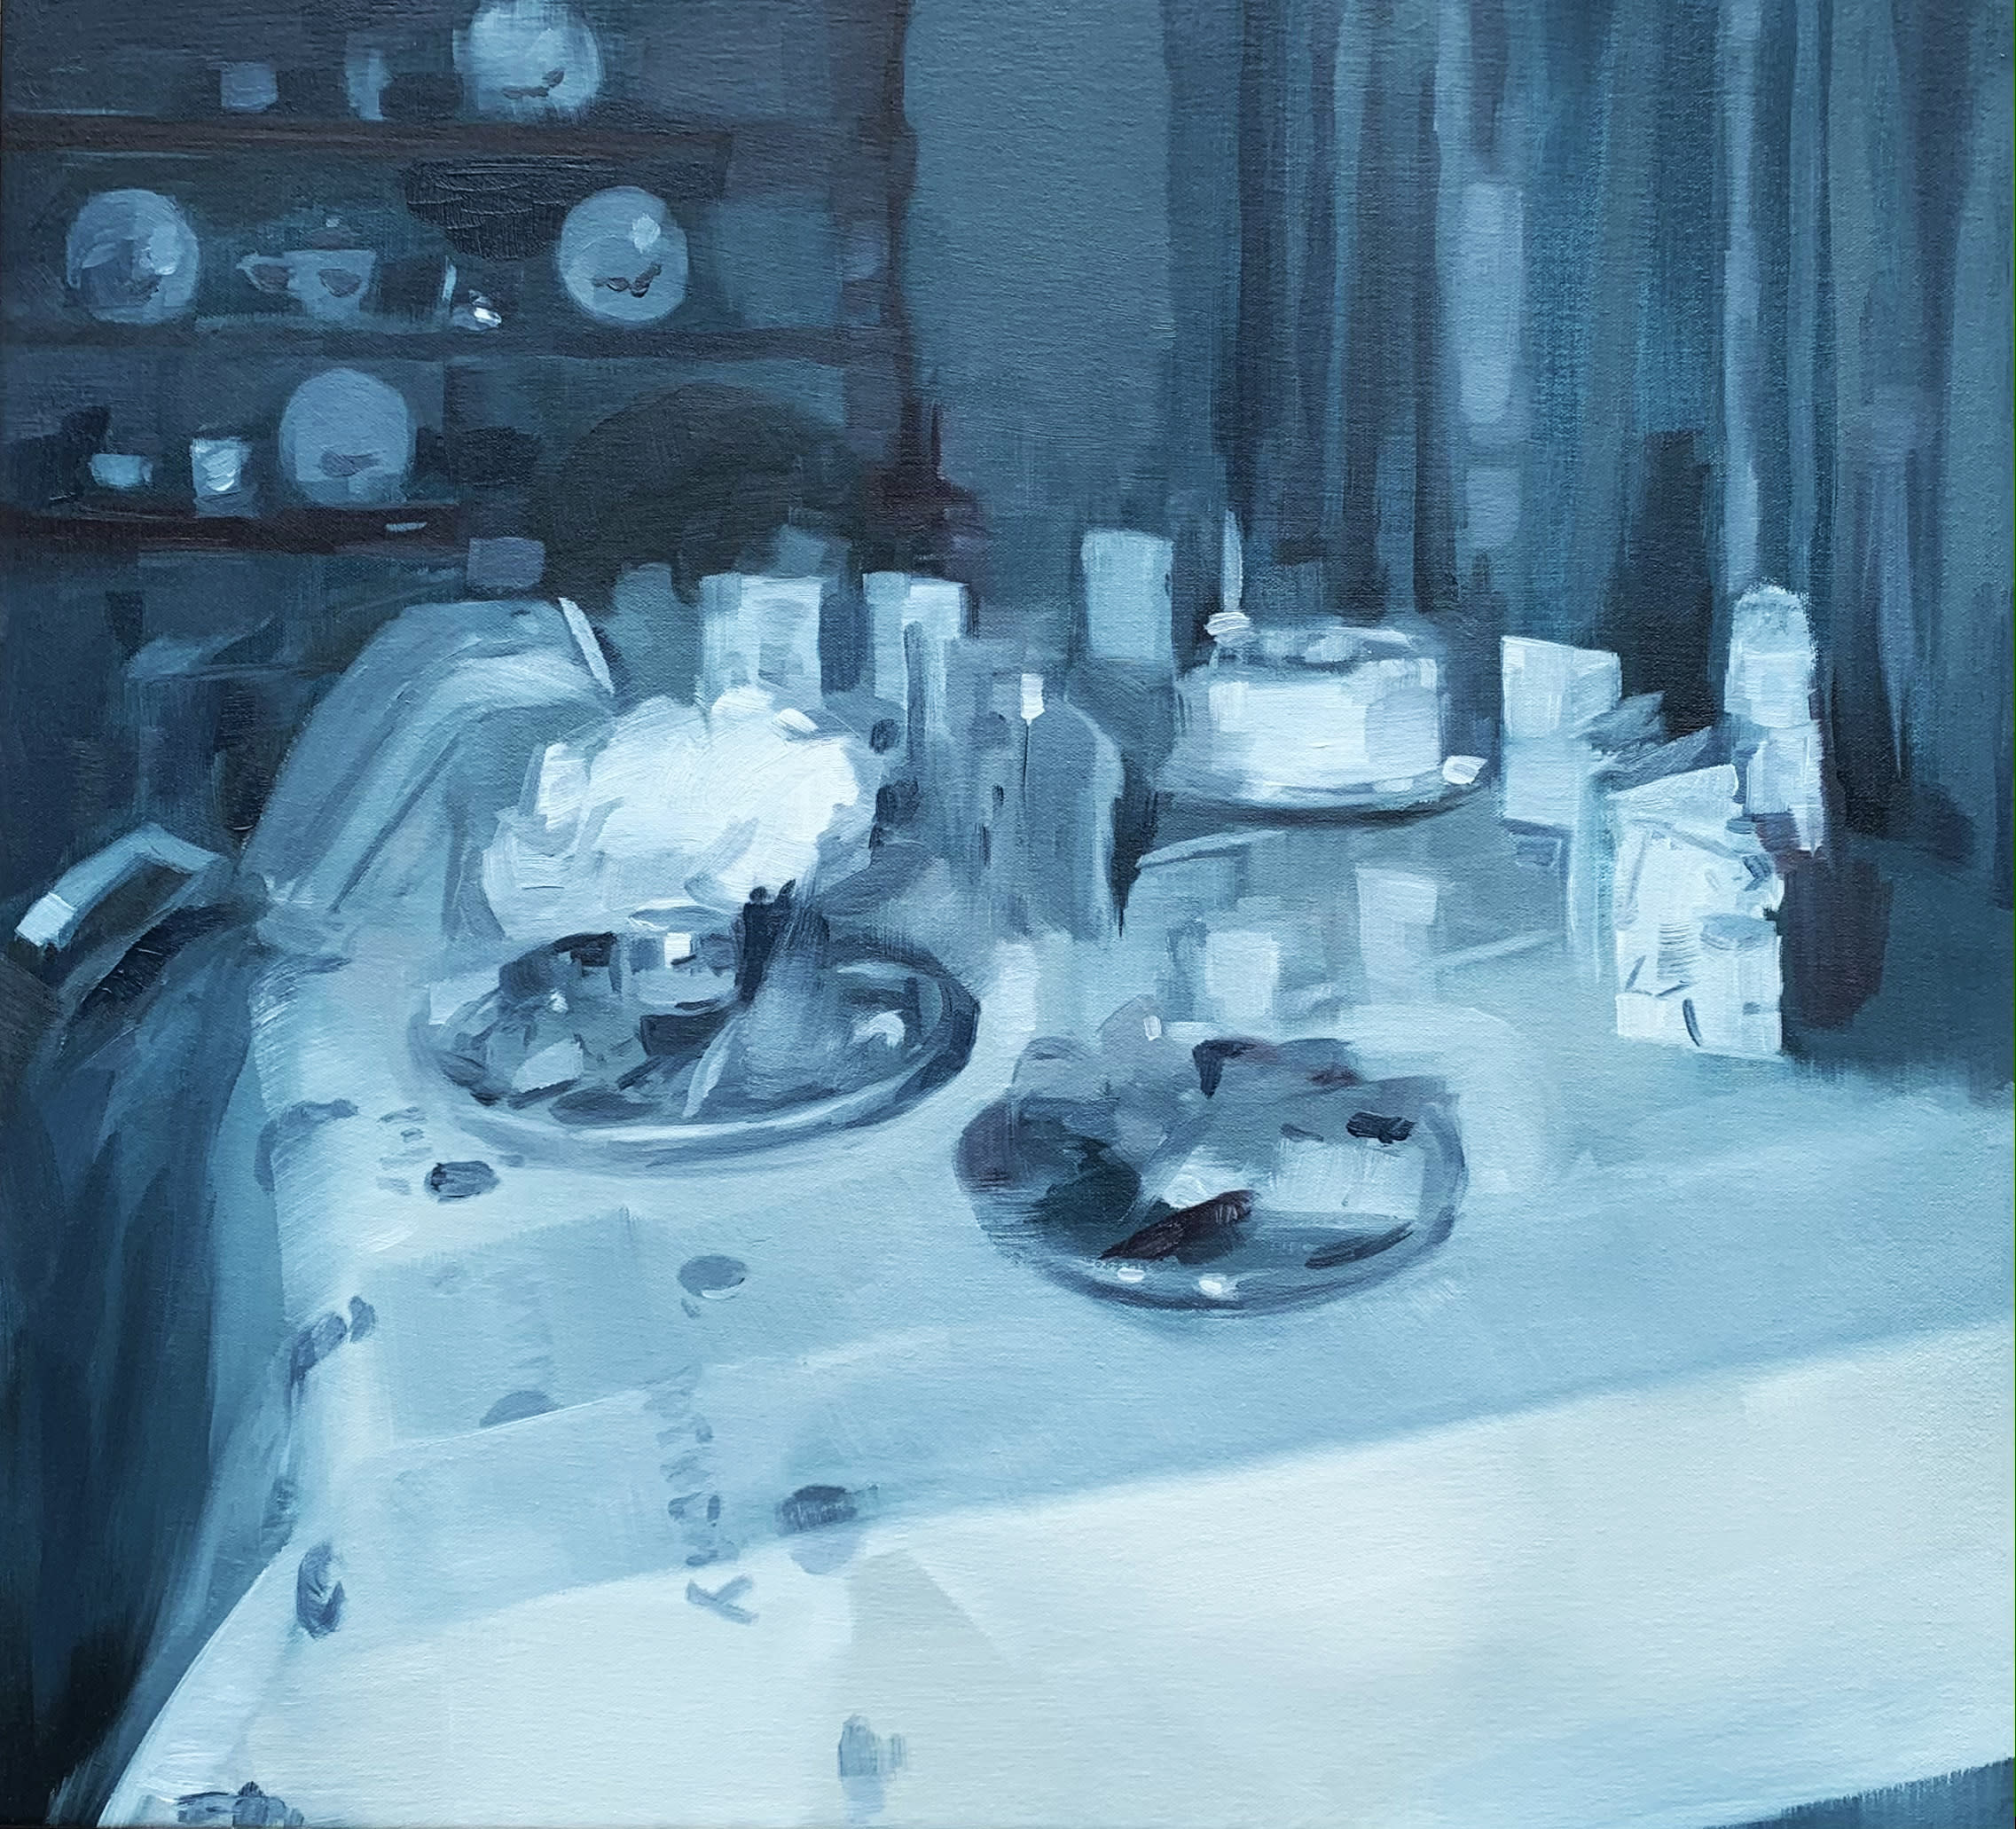 """<span class=""""link fancybox-details-link""""><a href=""""/artists/89-kirsten-tradowsky/works/1414-kirsten-tradowsky-indigo-tablescape/"""">View Detail Page</a></span><div class=""""artist""""><strong>Kirsten Tradowsky</strong></div> <div class=""""title""""><em>Indigo Tablescape</em></div> <div class=""""medium"""">Oil on canvas</div> <div class=""""dimensions"""">20 x 22 inches</div>"""